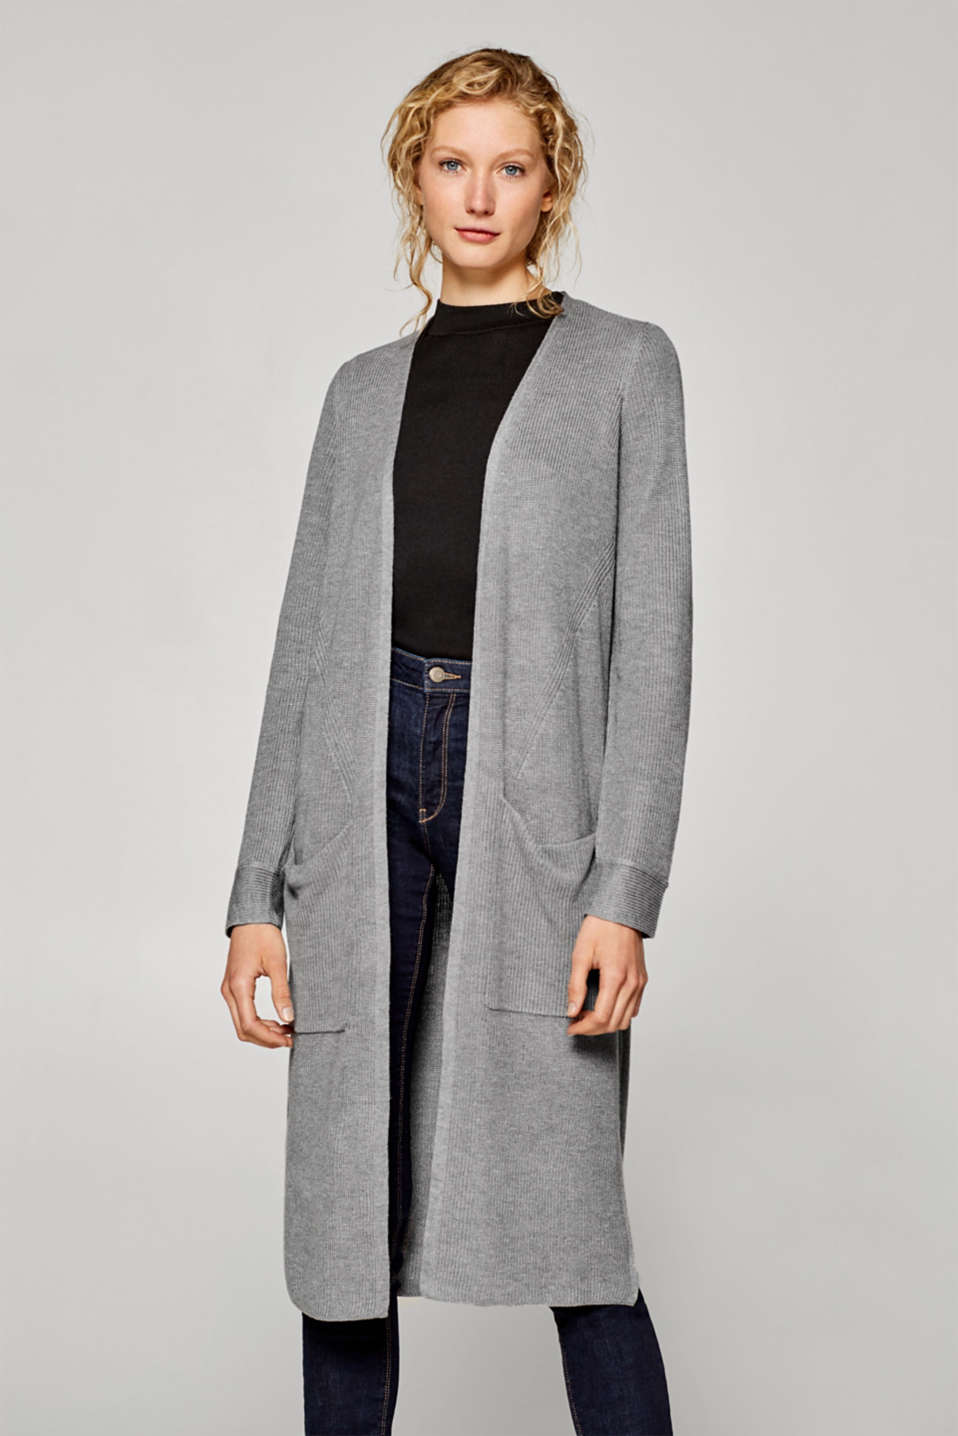 Esprit - Long cardigan with patch pockets